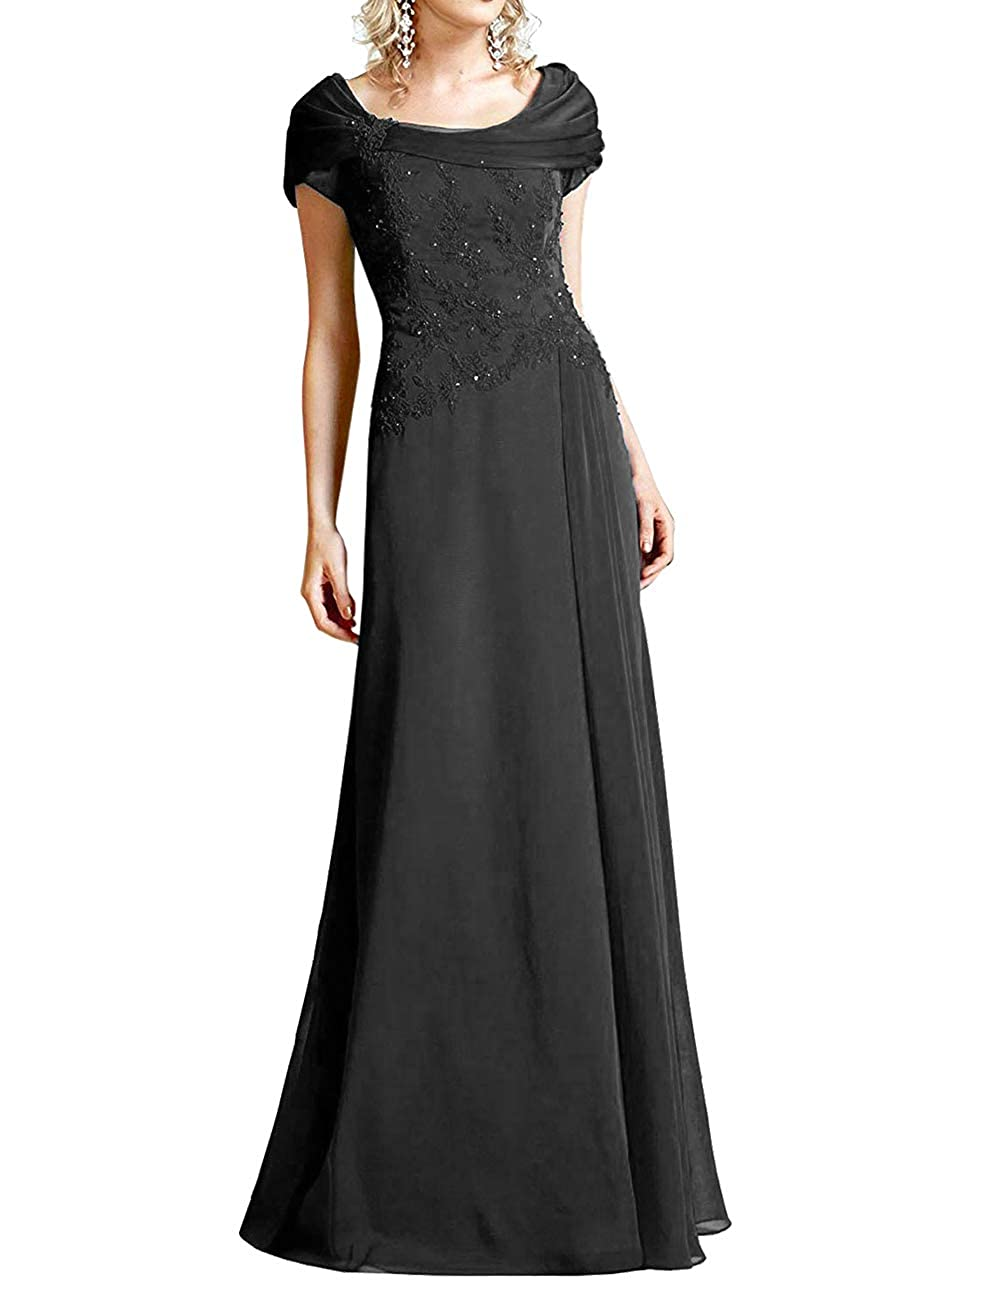 Black H.S.D Mother of The Bride Dresses Lace Formal Gowns Long Evening Dress Prom Wrap Shawl